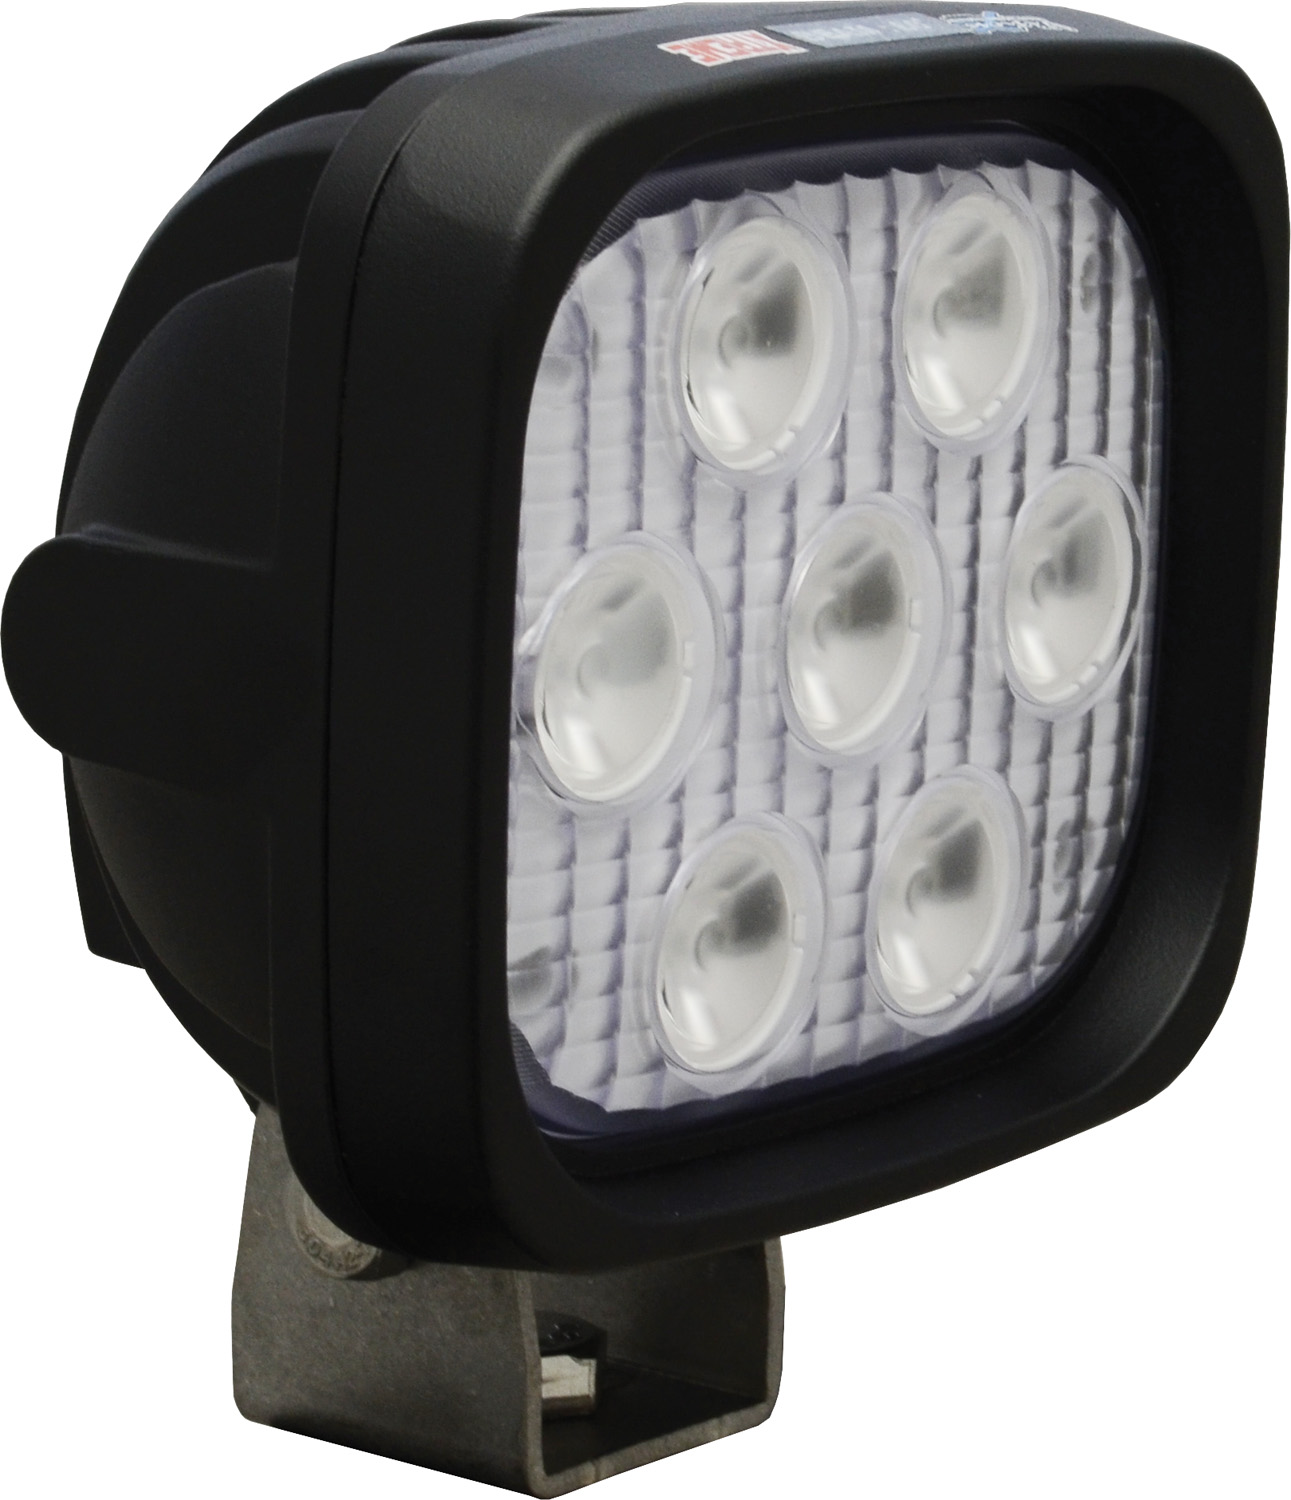 "4"" SQUARE UTILITY MARKET XTREME BLACK 7 5W LED'S 60ç WIDE"